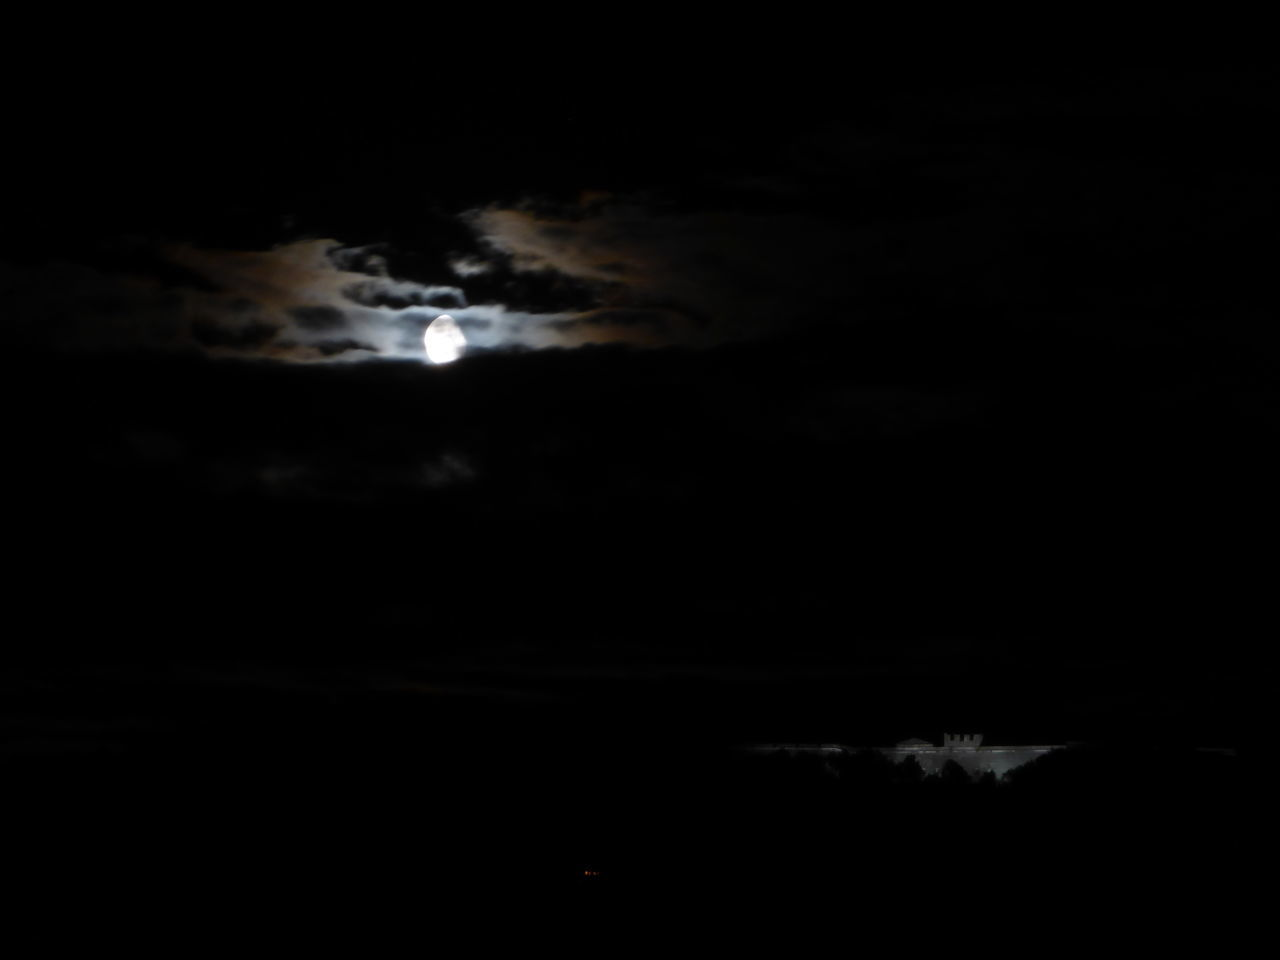 Cloud - Sky Dark Dreamlike Majestic Moon Moonlight Outdoors Scenics